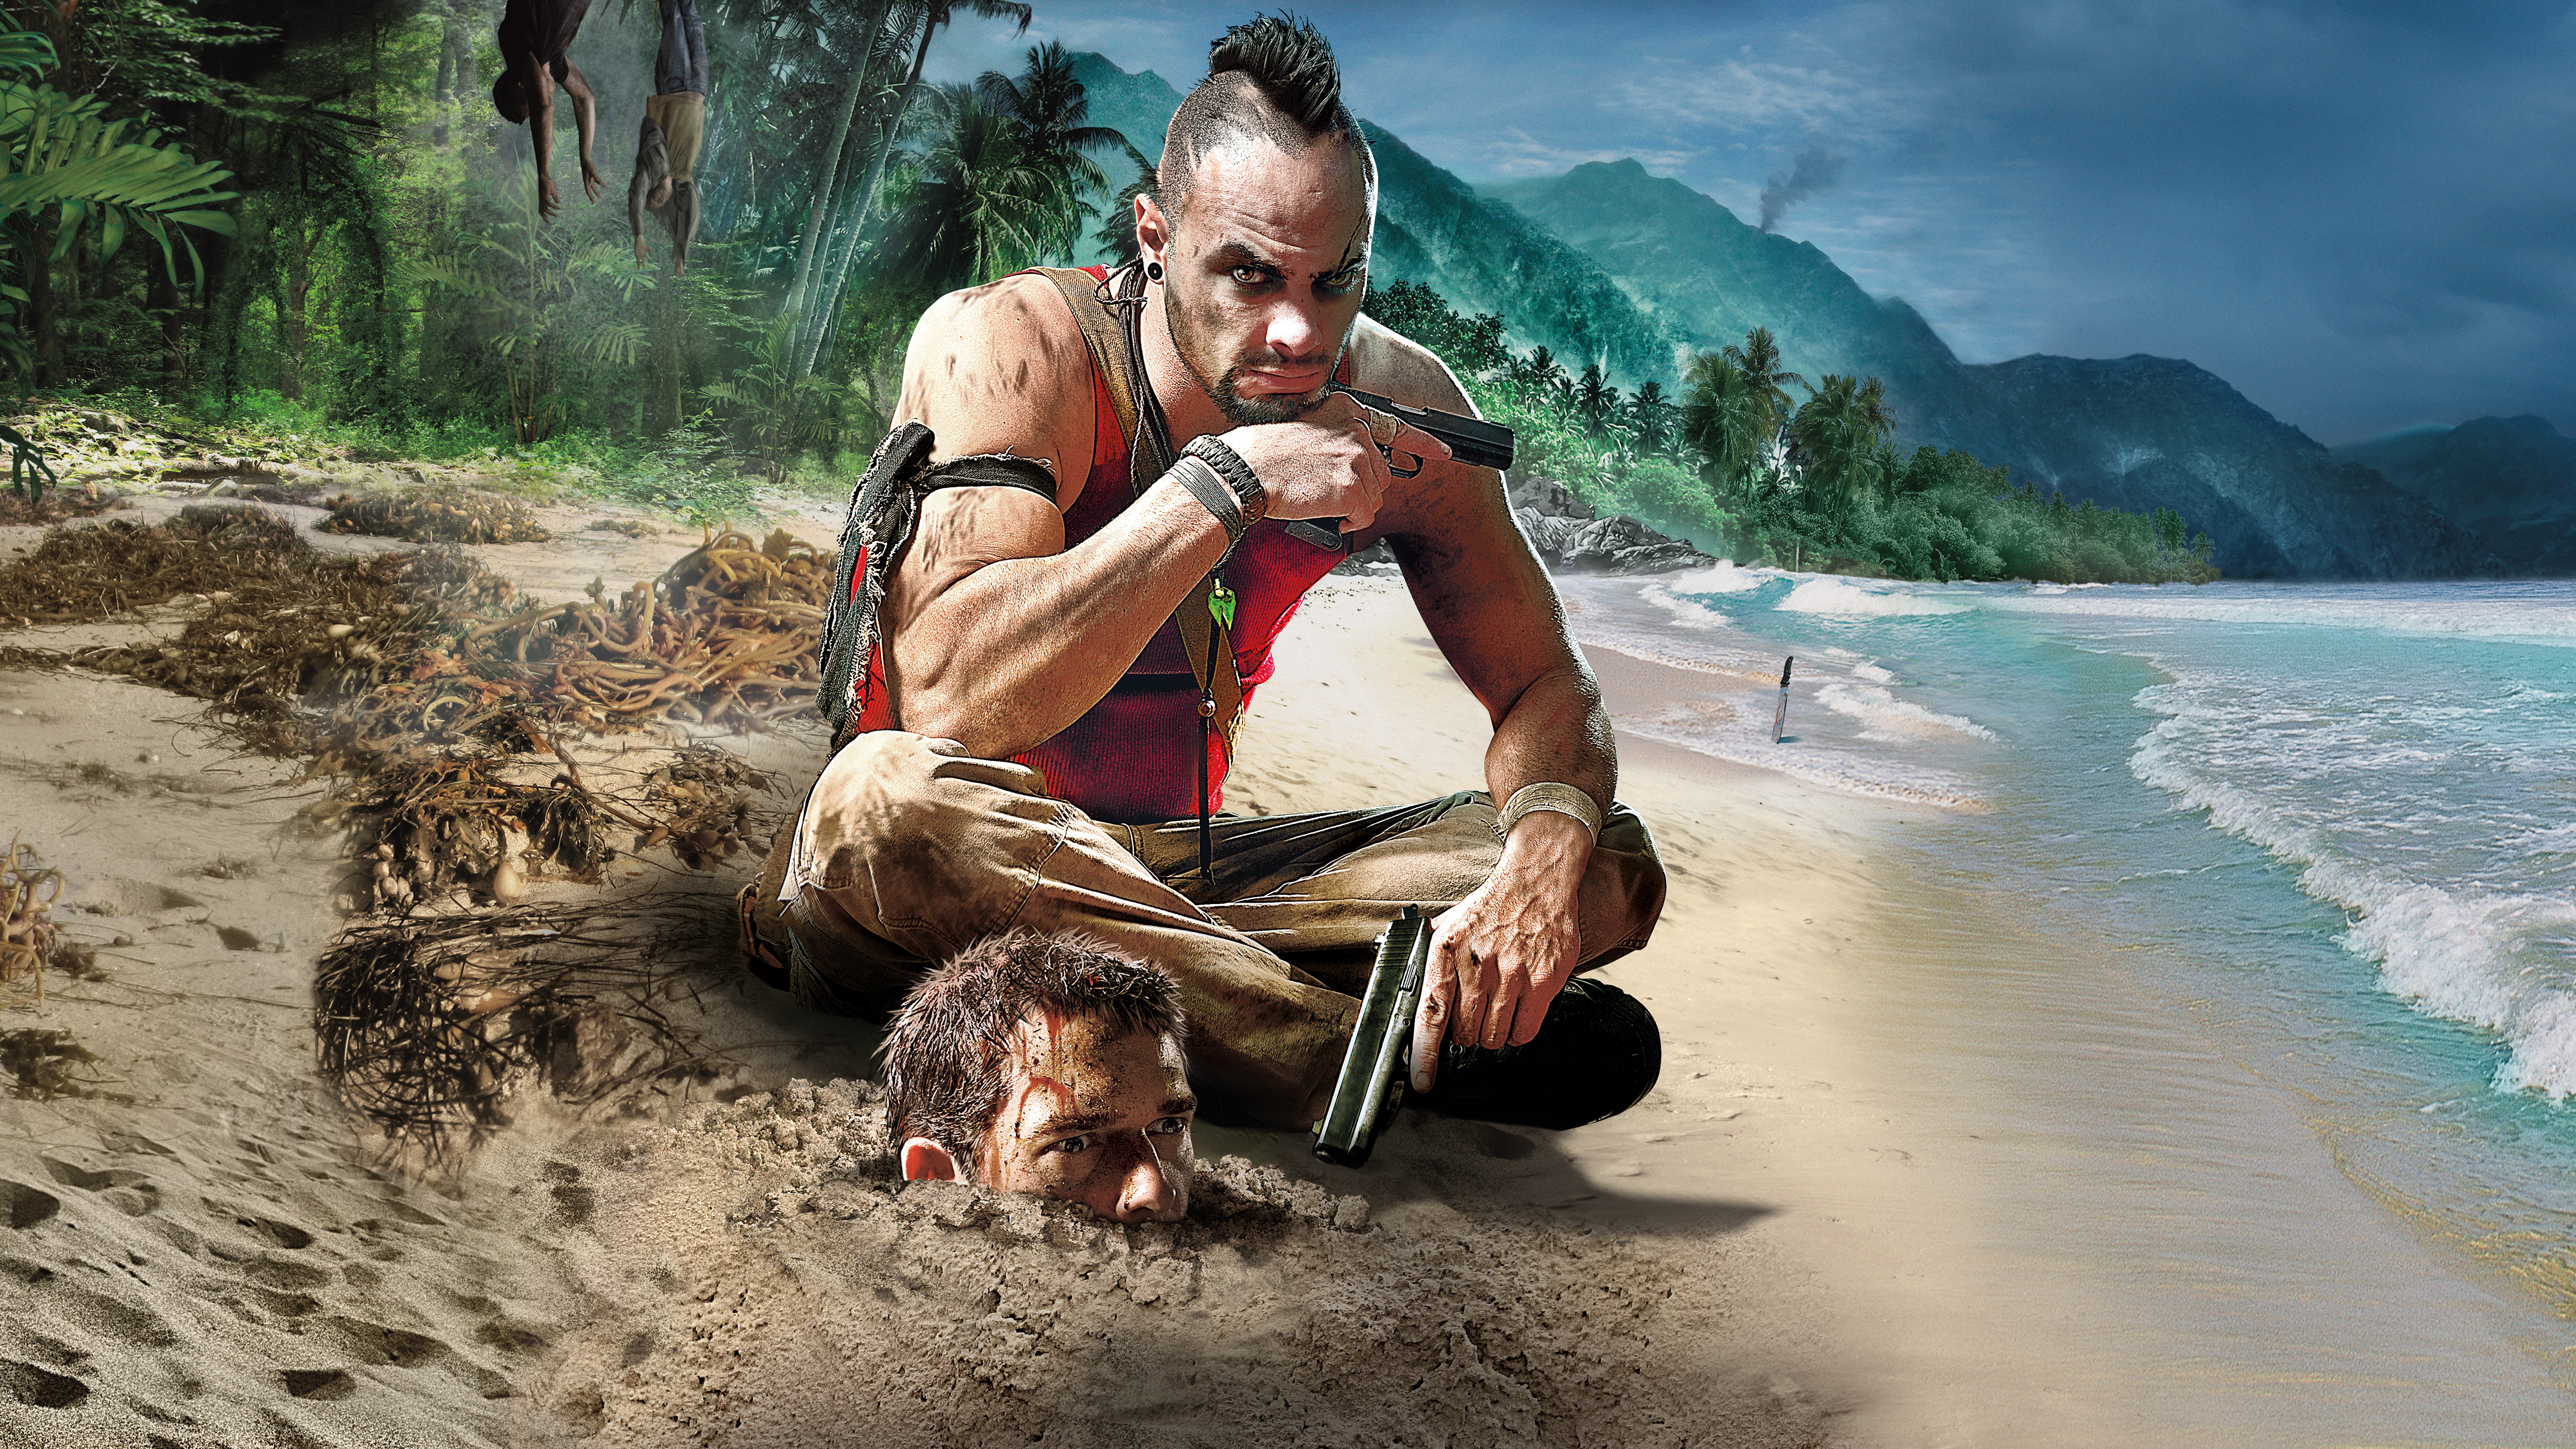 1920x1080 Far Cry 3 5k Laptop Full Hd 1080p Hd 4k Wallpapers Images Backgrounds Photos And Pictures